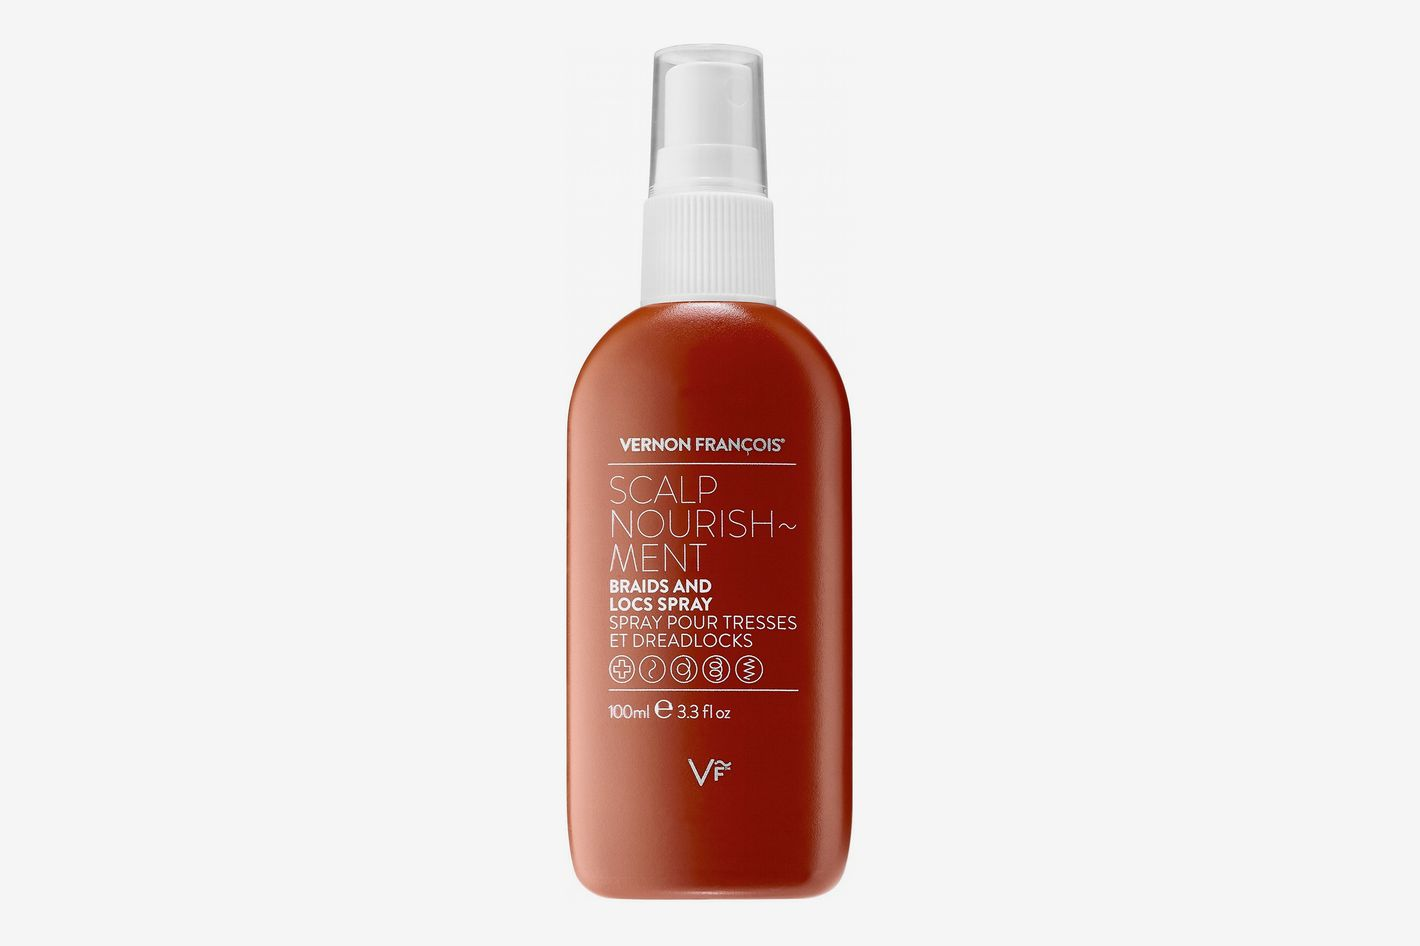 VERNON FRANCOIS SCALP NOURISH~MENT Braids and Locs Spray